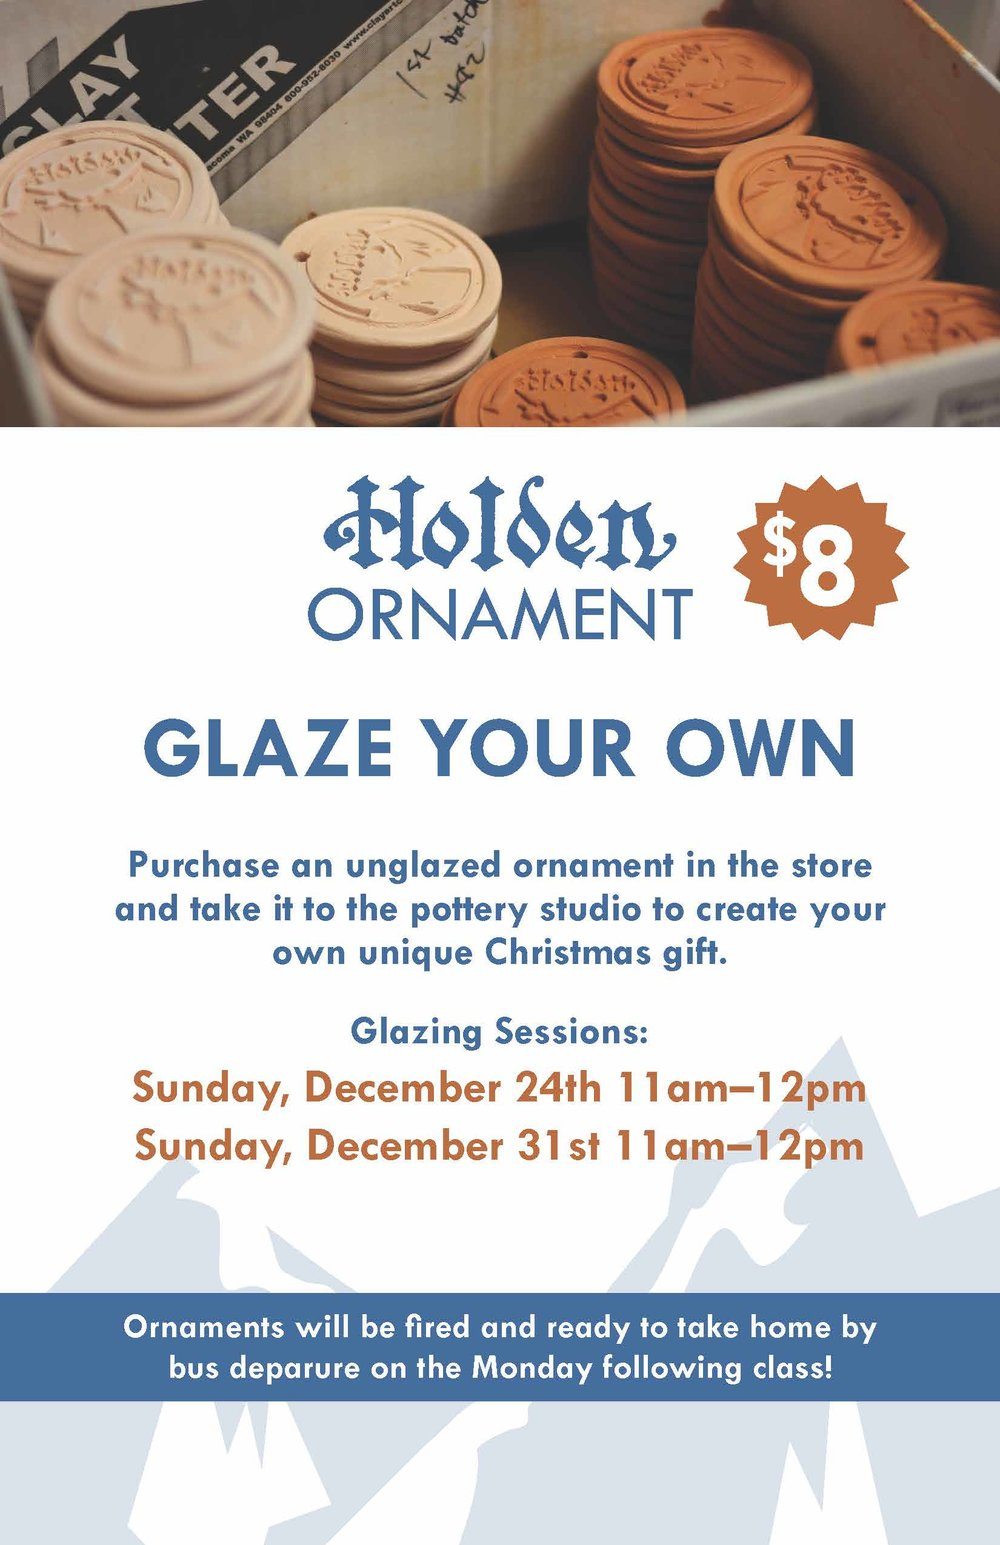 The Holden Ornament Glaze your own copy.jpg